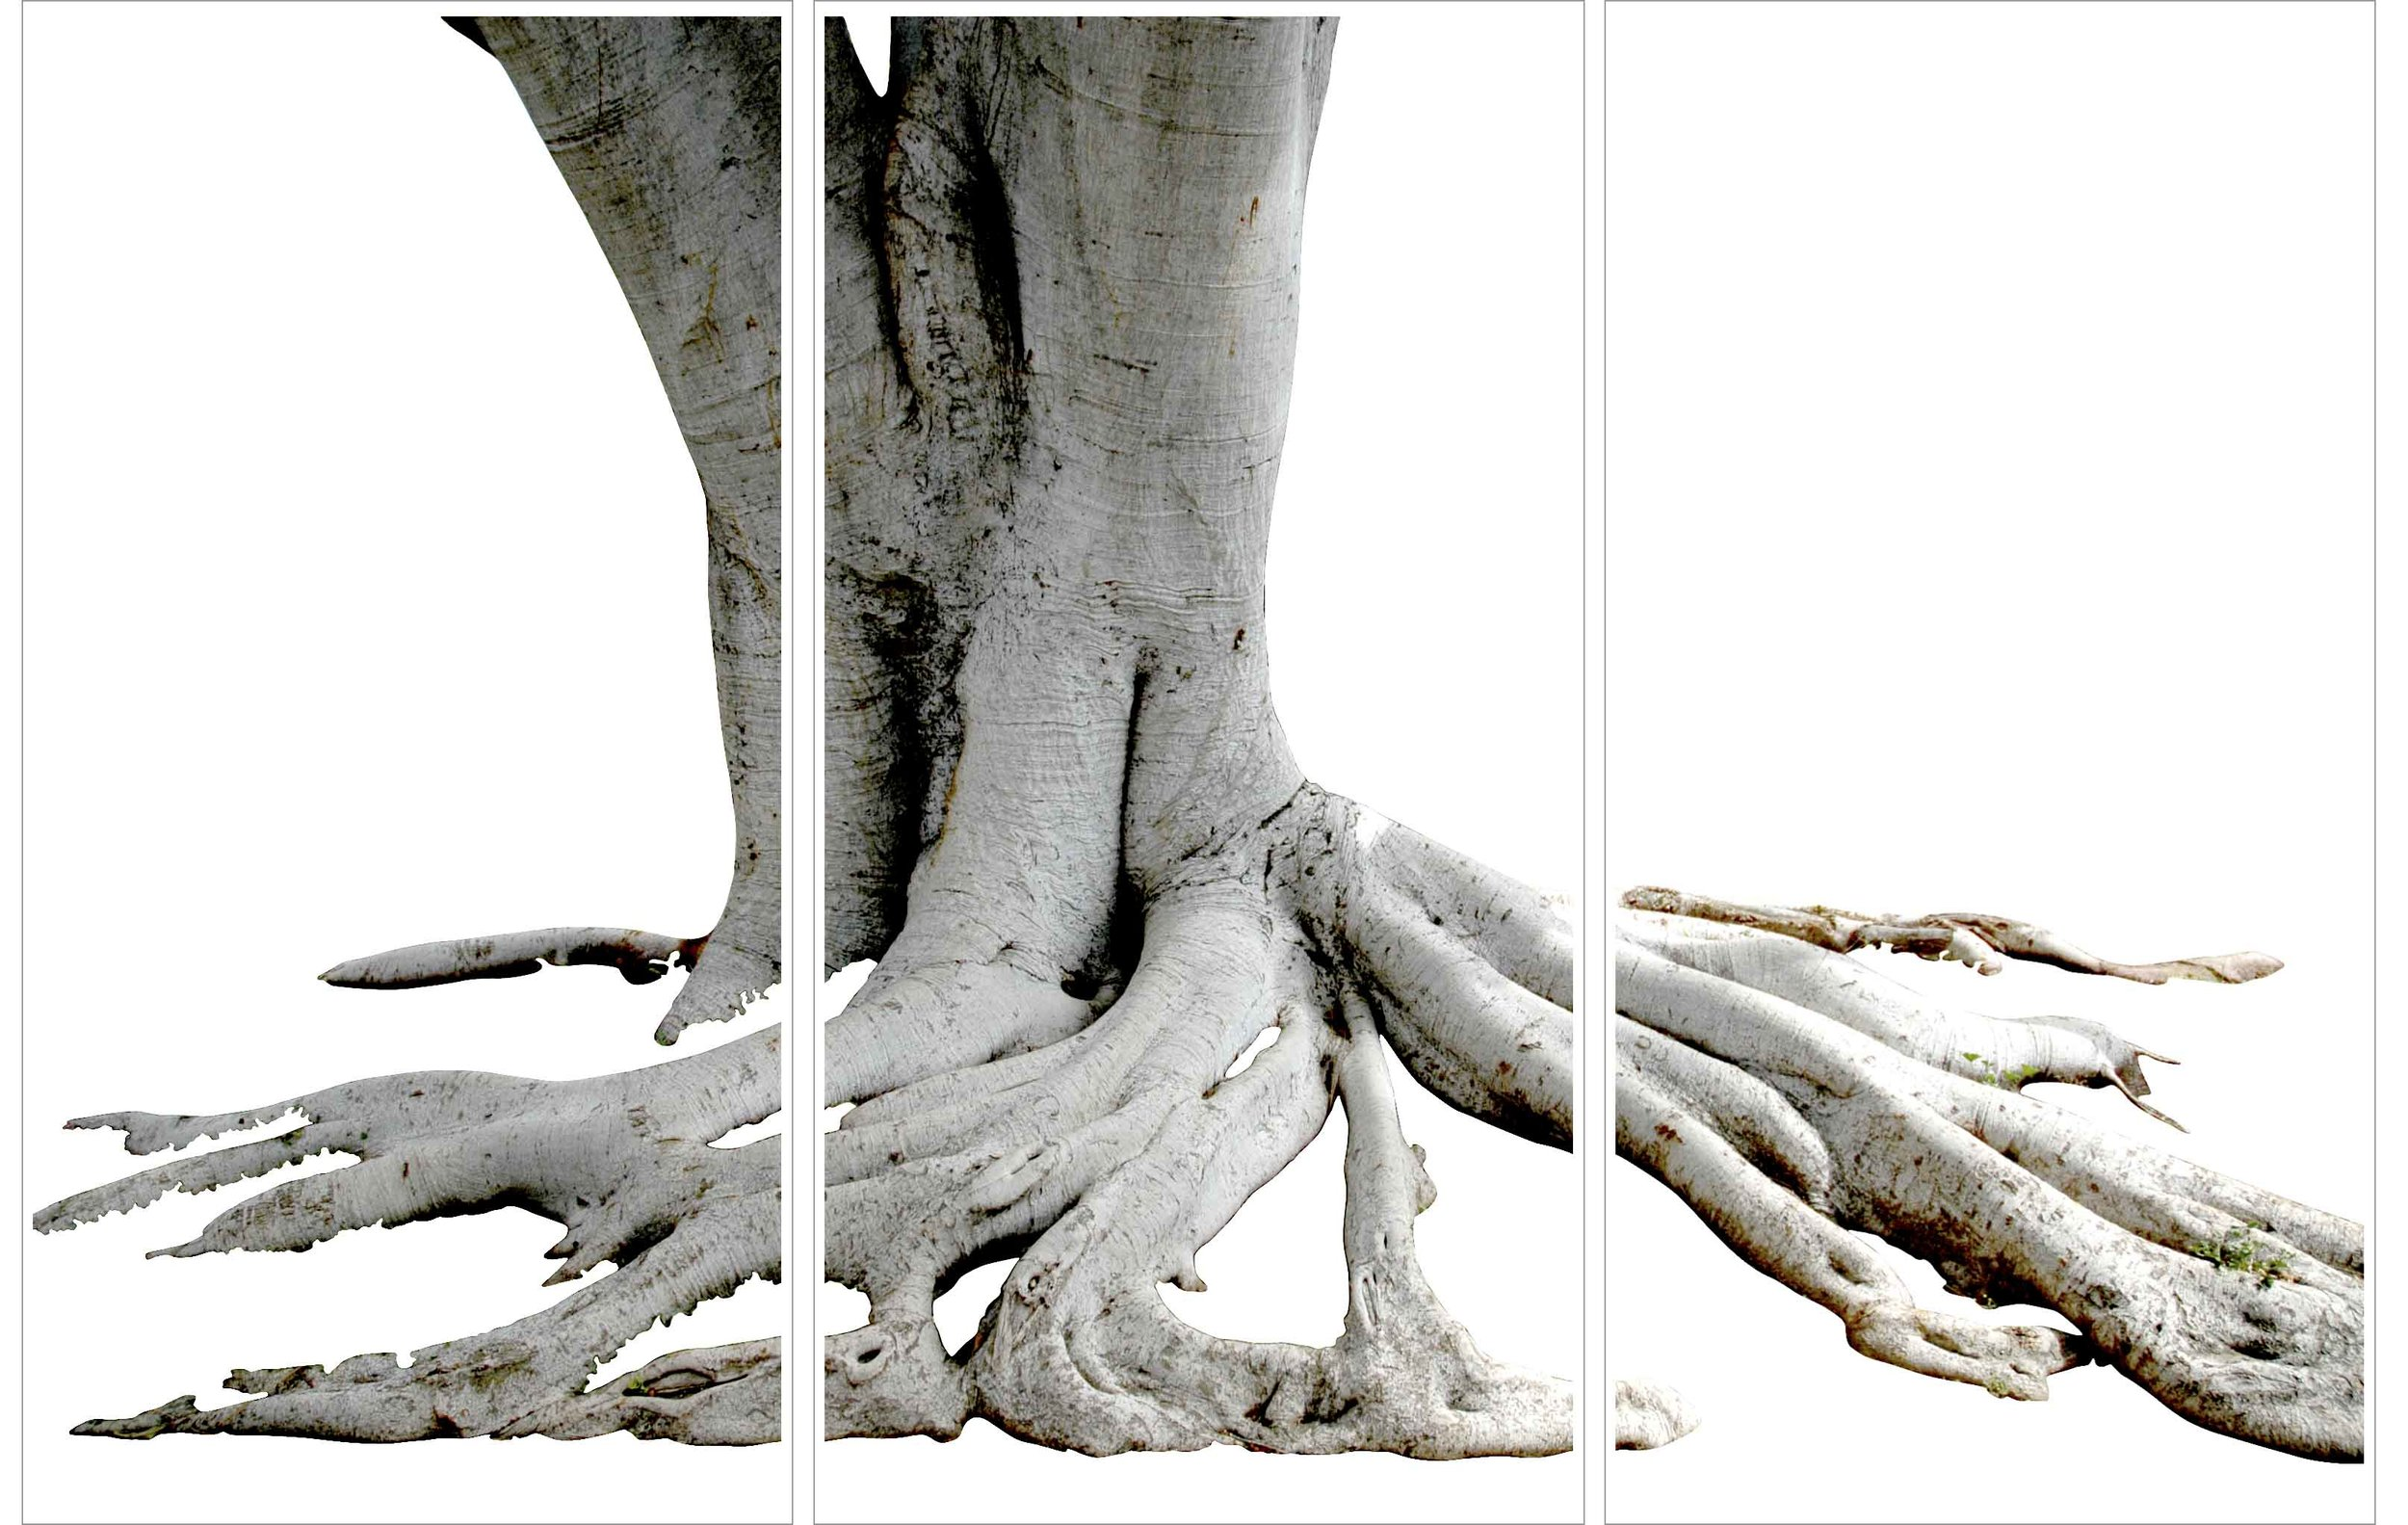 sycamore root.jpg